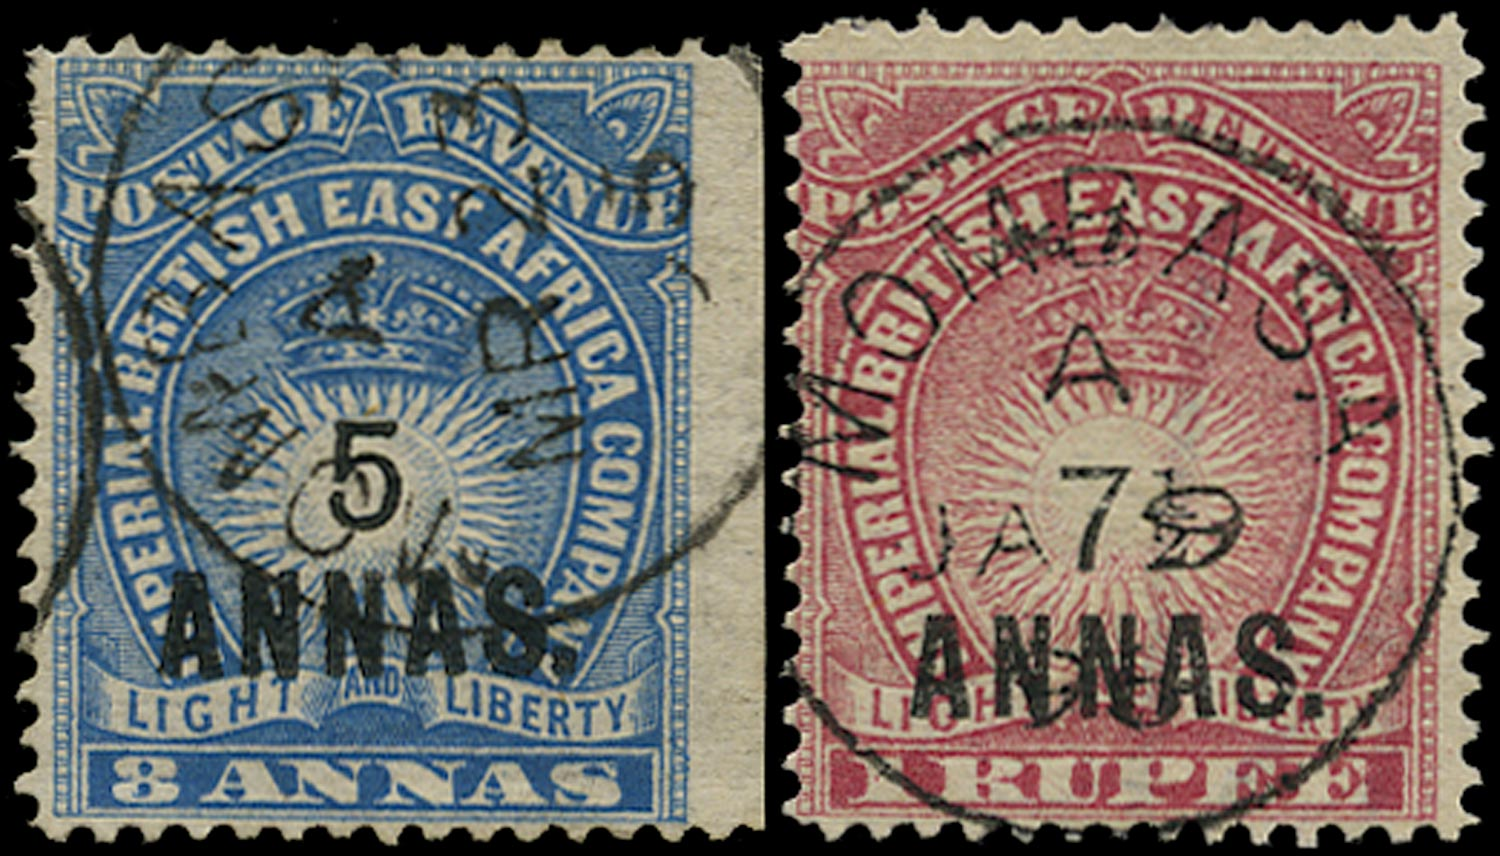 BRITISH EAST AFRICA 1894  SG27/28 Used 5a on 8a blue and 7½a on 1r carmine